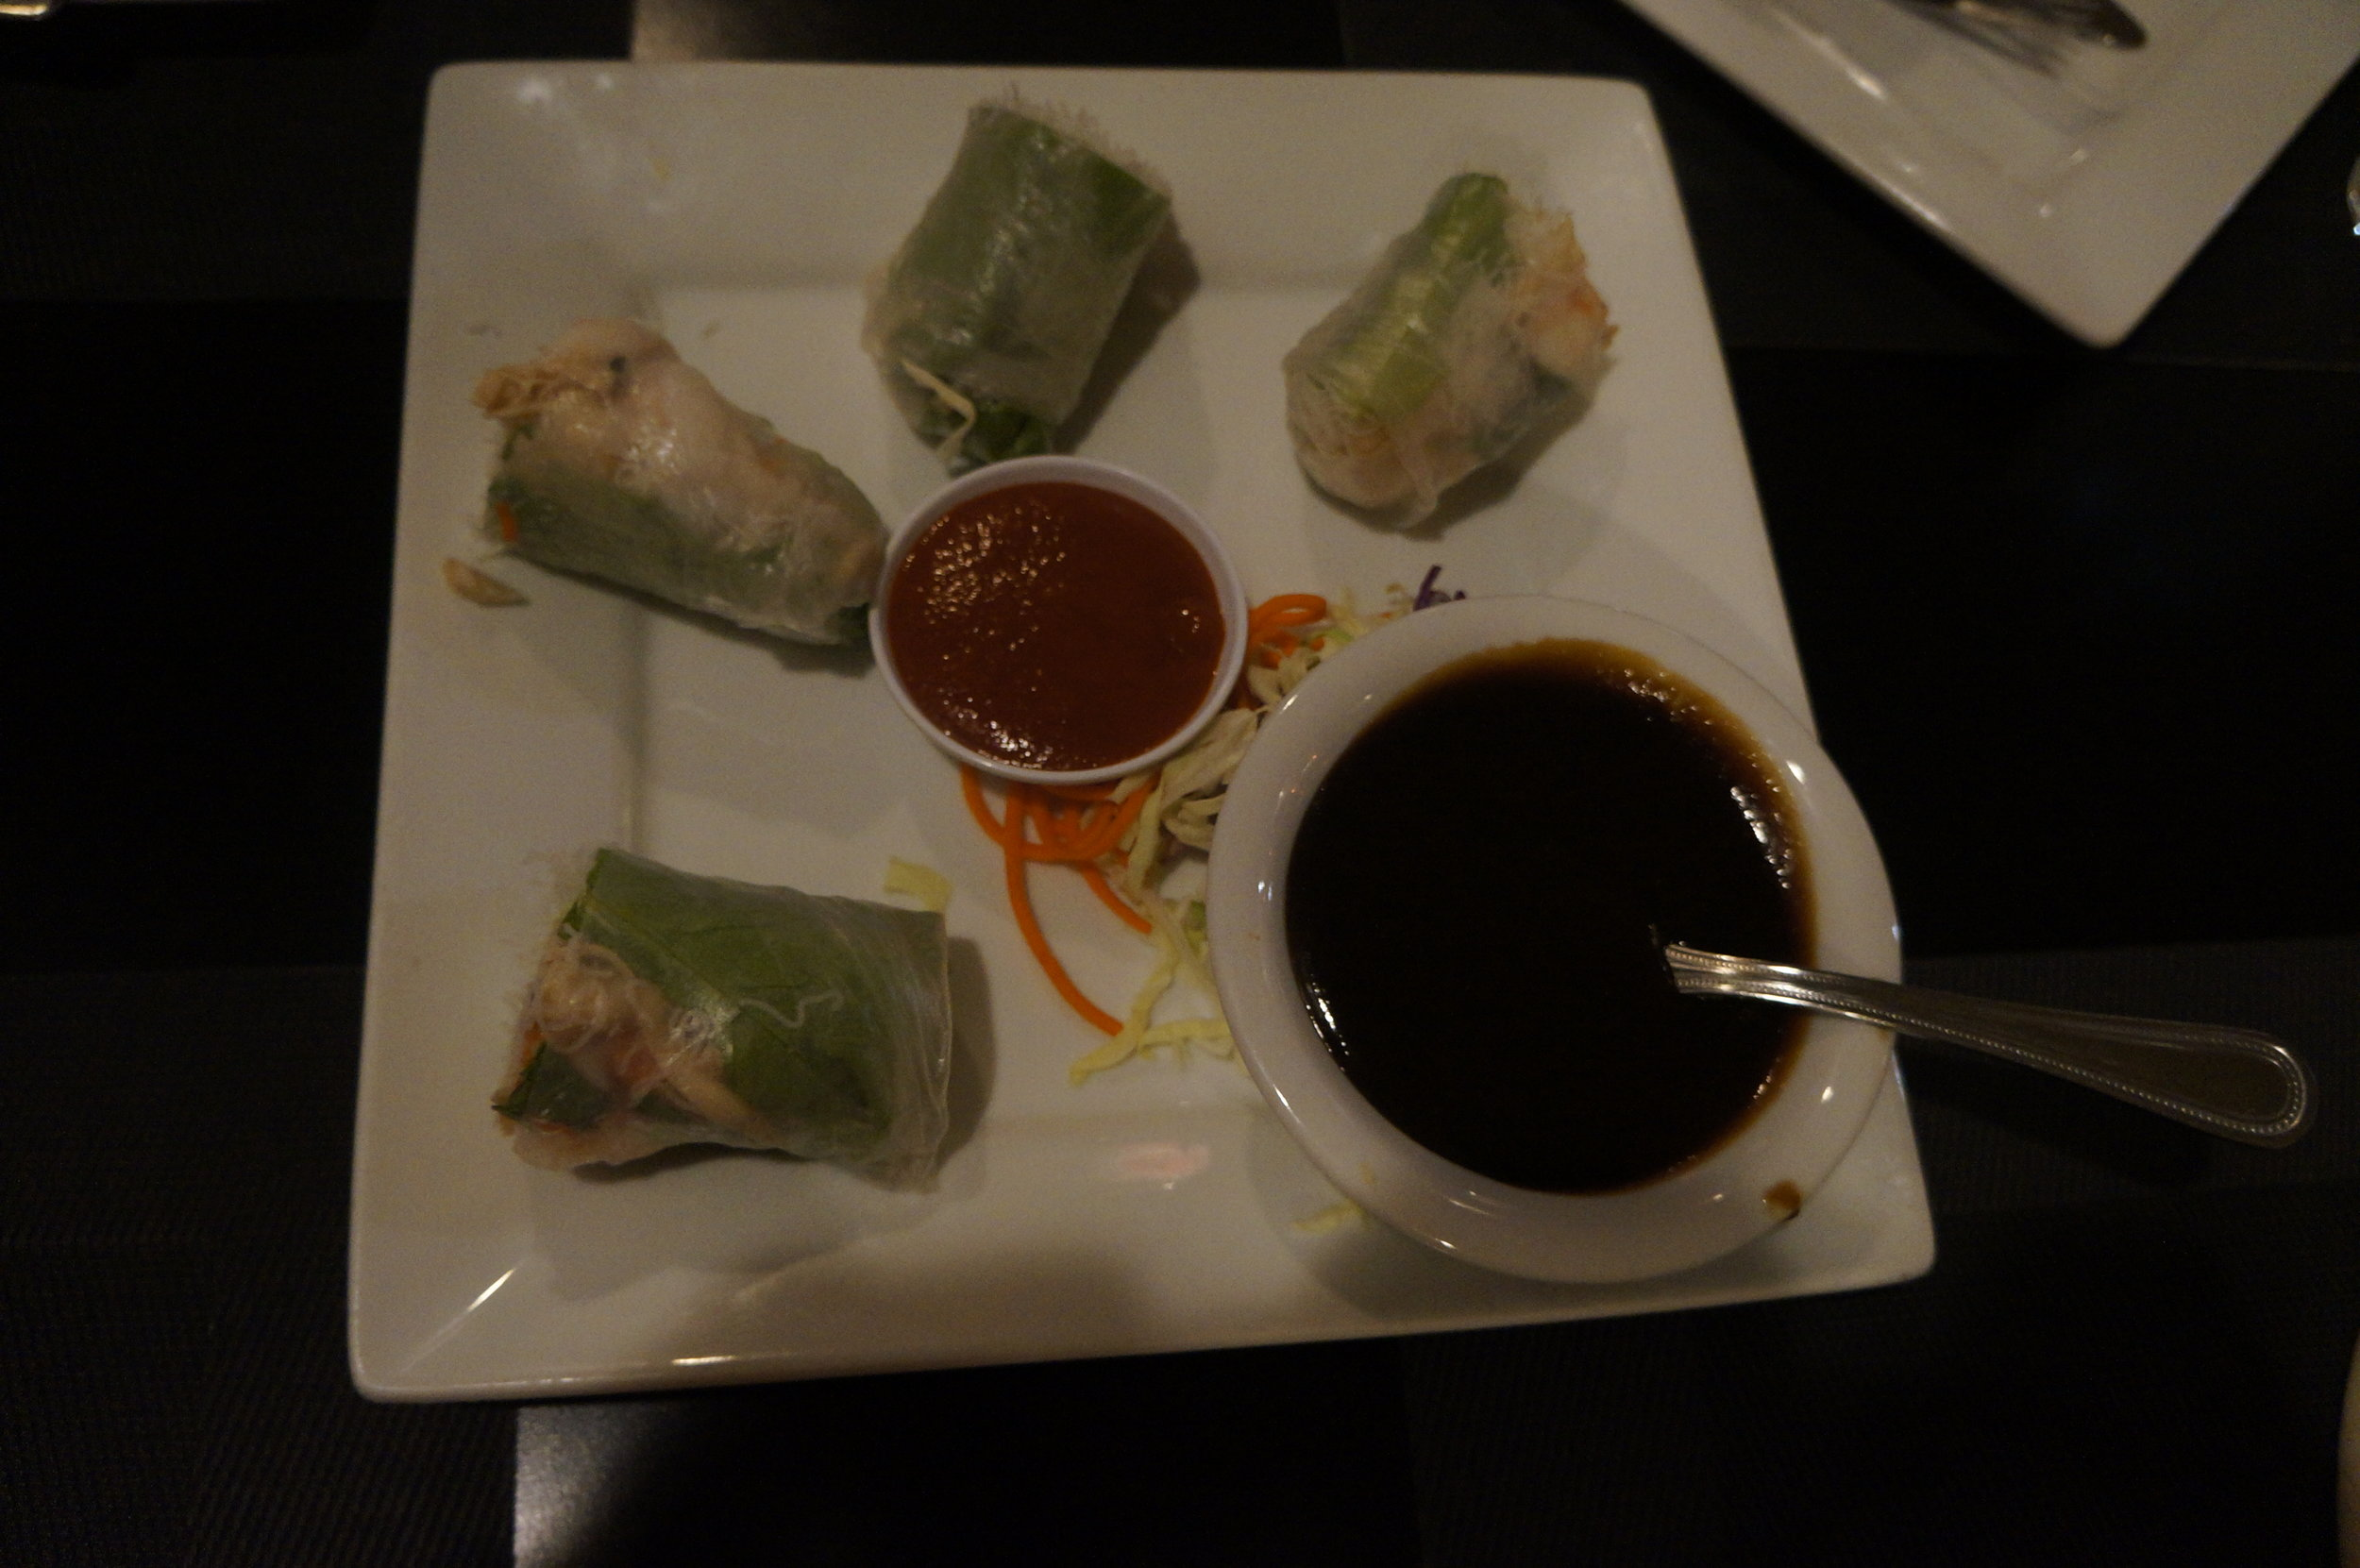 Fresh Summer Rolls - Two rice paper rolls with chicken, shrimp, rice noodles, mint, cucumber & cabbage. Also available with tofu.